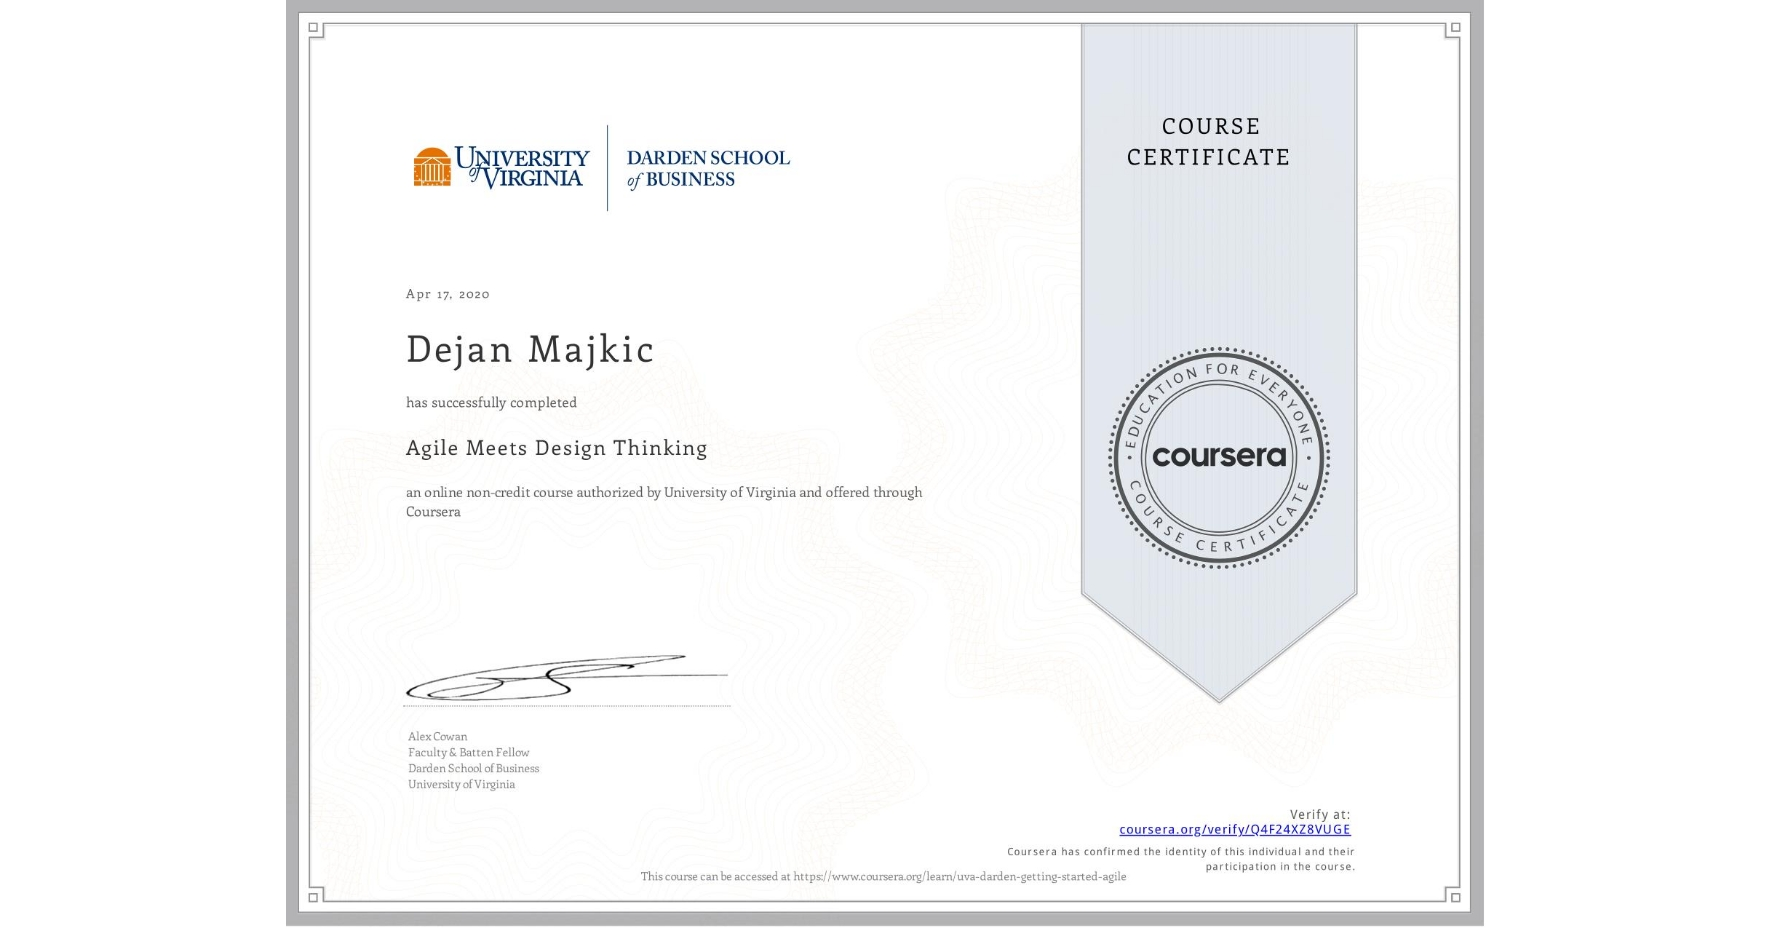 View certificate for Dejan Majkic, Agile Meets Design Thinking, an online non-credit course authorized by University of Virginia and offered through Coursera